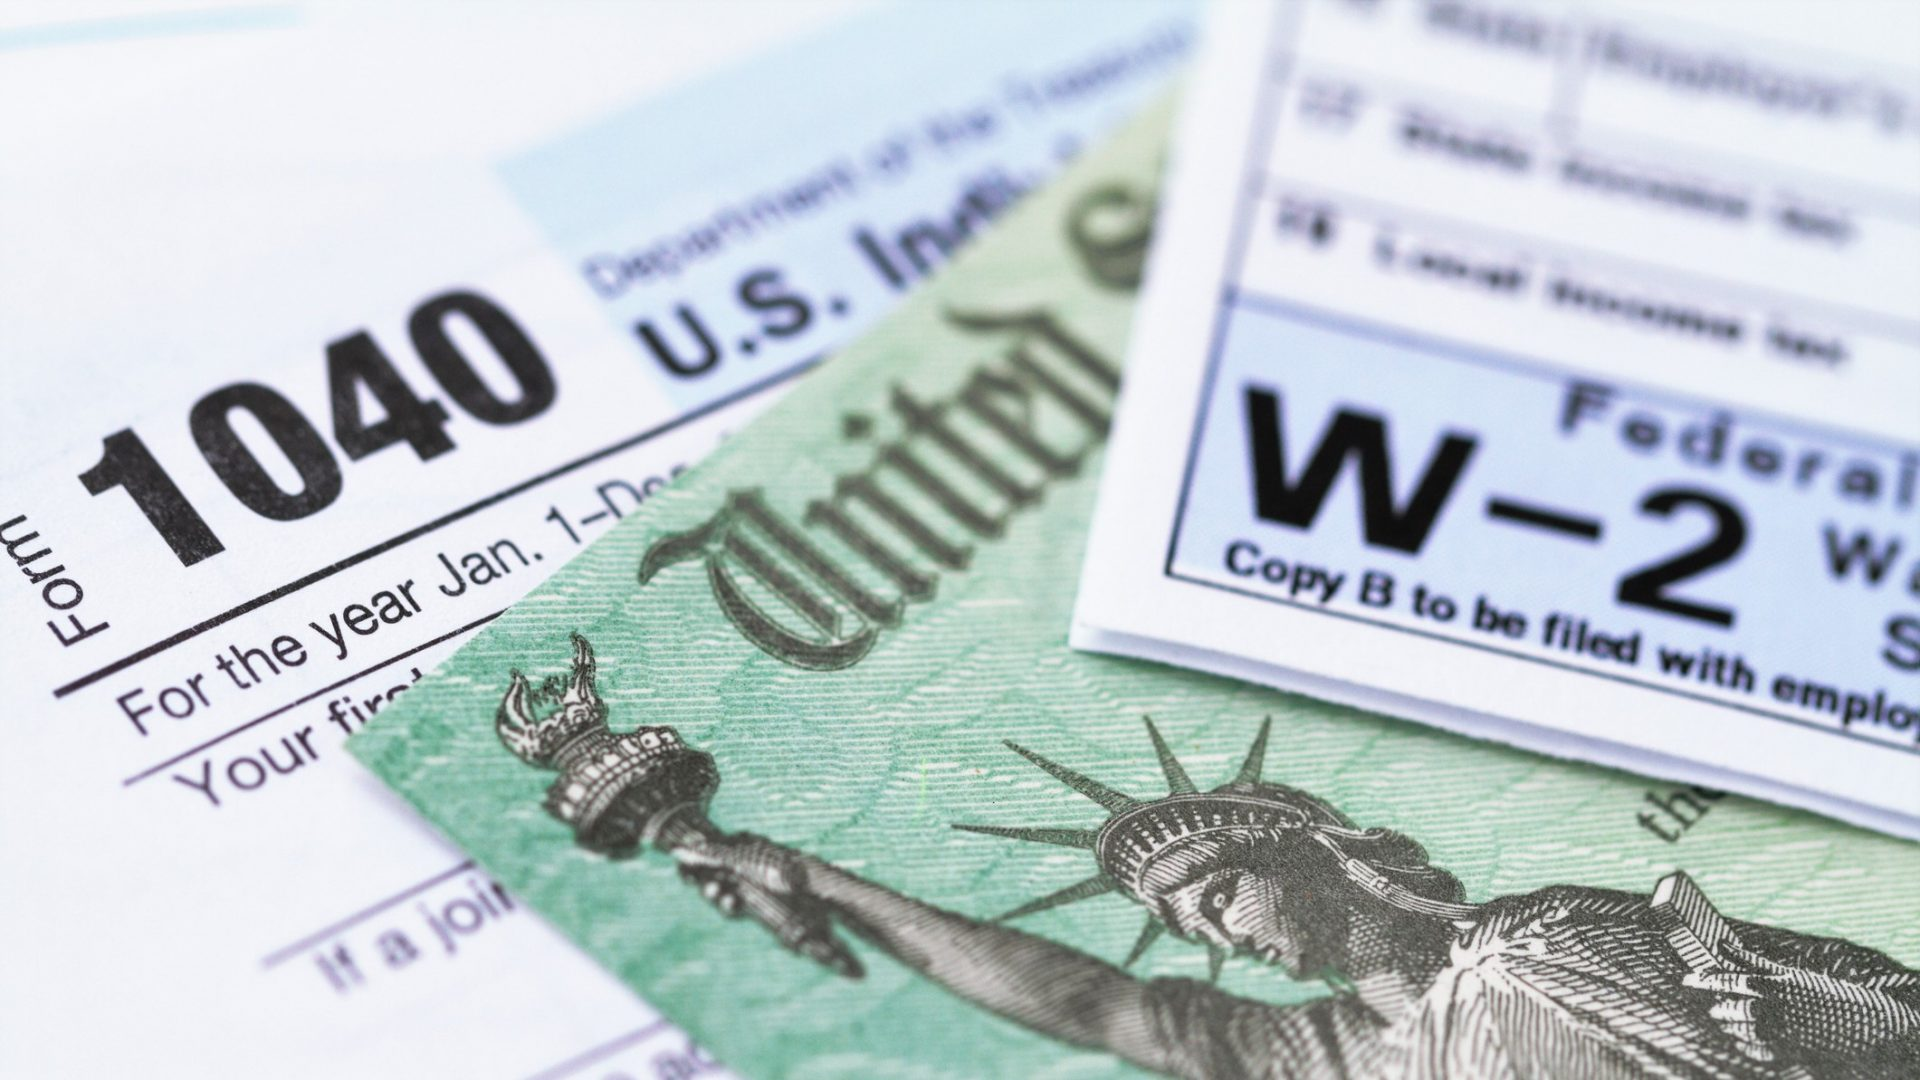 1040 income tax form and w-2 wage statement with a federal Treasury refund check.